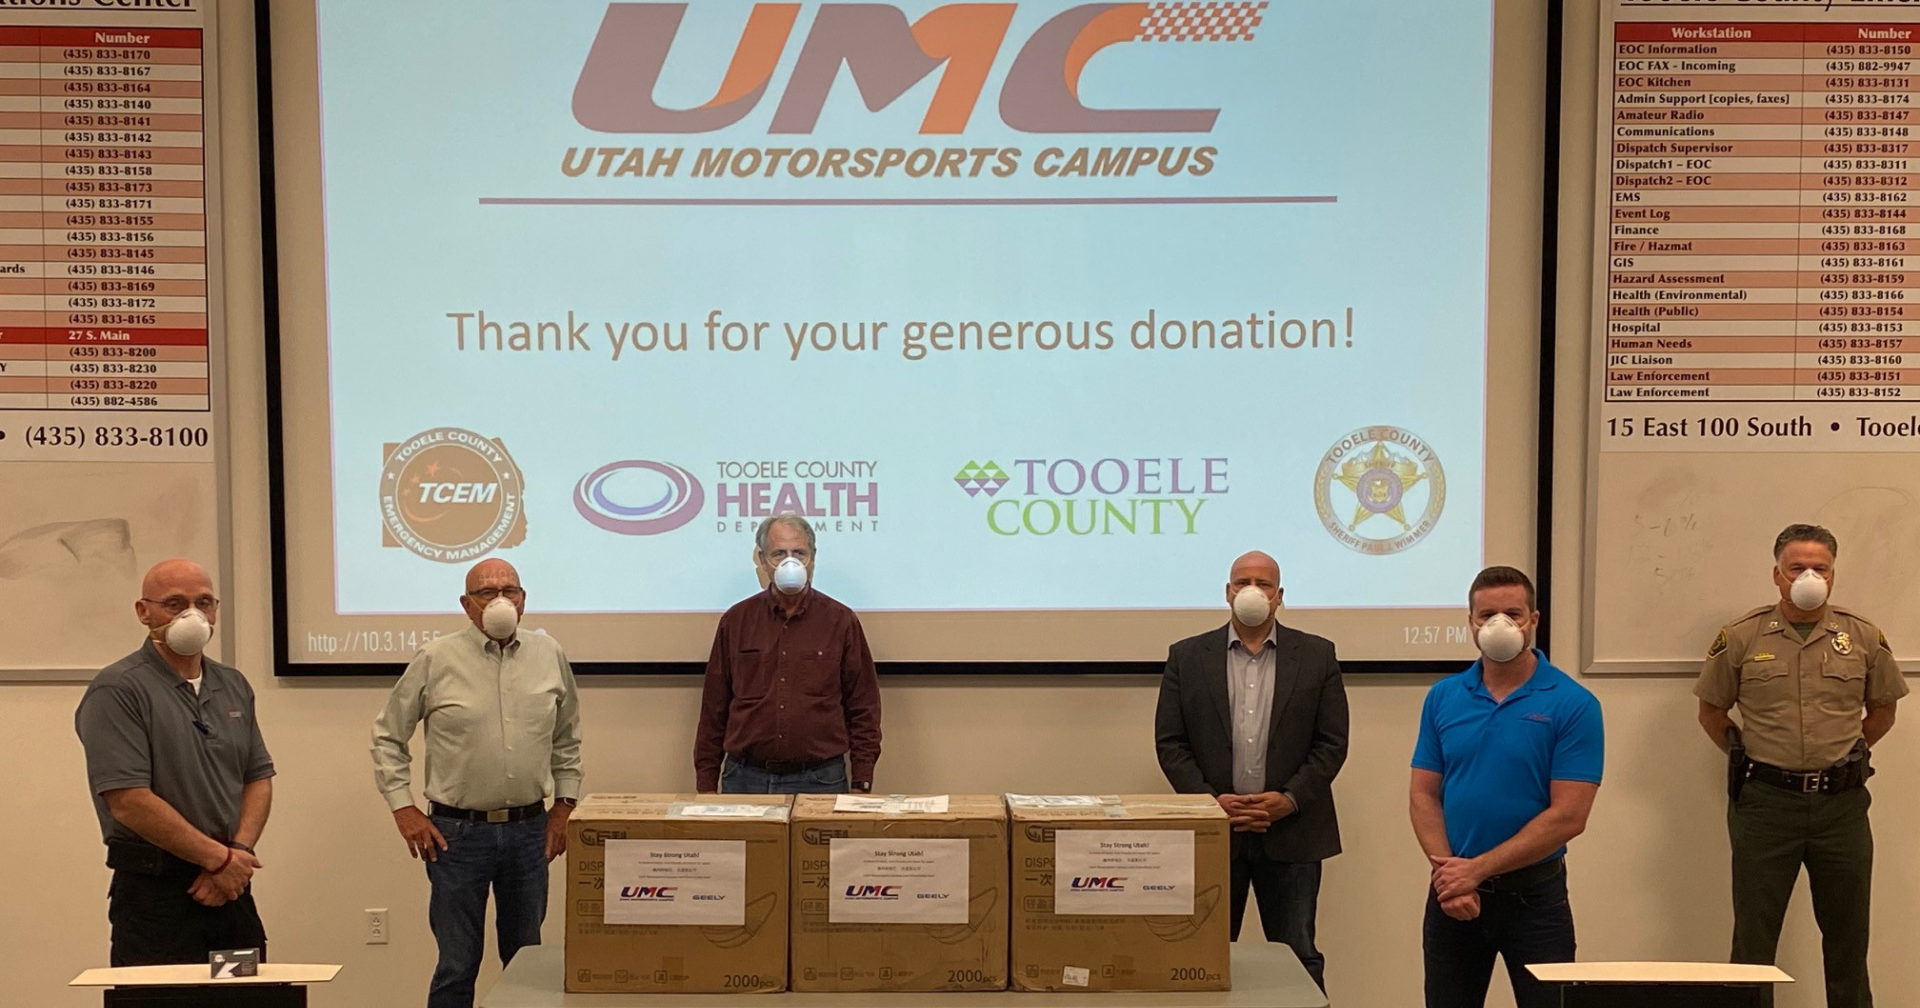 Utah Motorsports Campus donates 5,000 medical-grade face masks to Tooele County. Pictured left to right are: Bucky Whitehouse, Tooele County Emergency Manager; Kendall Thomas, Tooele County Commissioner; Tom Tripp, Tooele County Commissioner; Shawn Milne, Tooele County Commissioner; Dixon Hunt, UMC Senior Vice President; Paul Wimmer, Tooele County Sheriff. Photo courtesy of Utah Motorsports Campus.